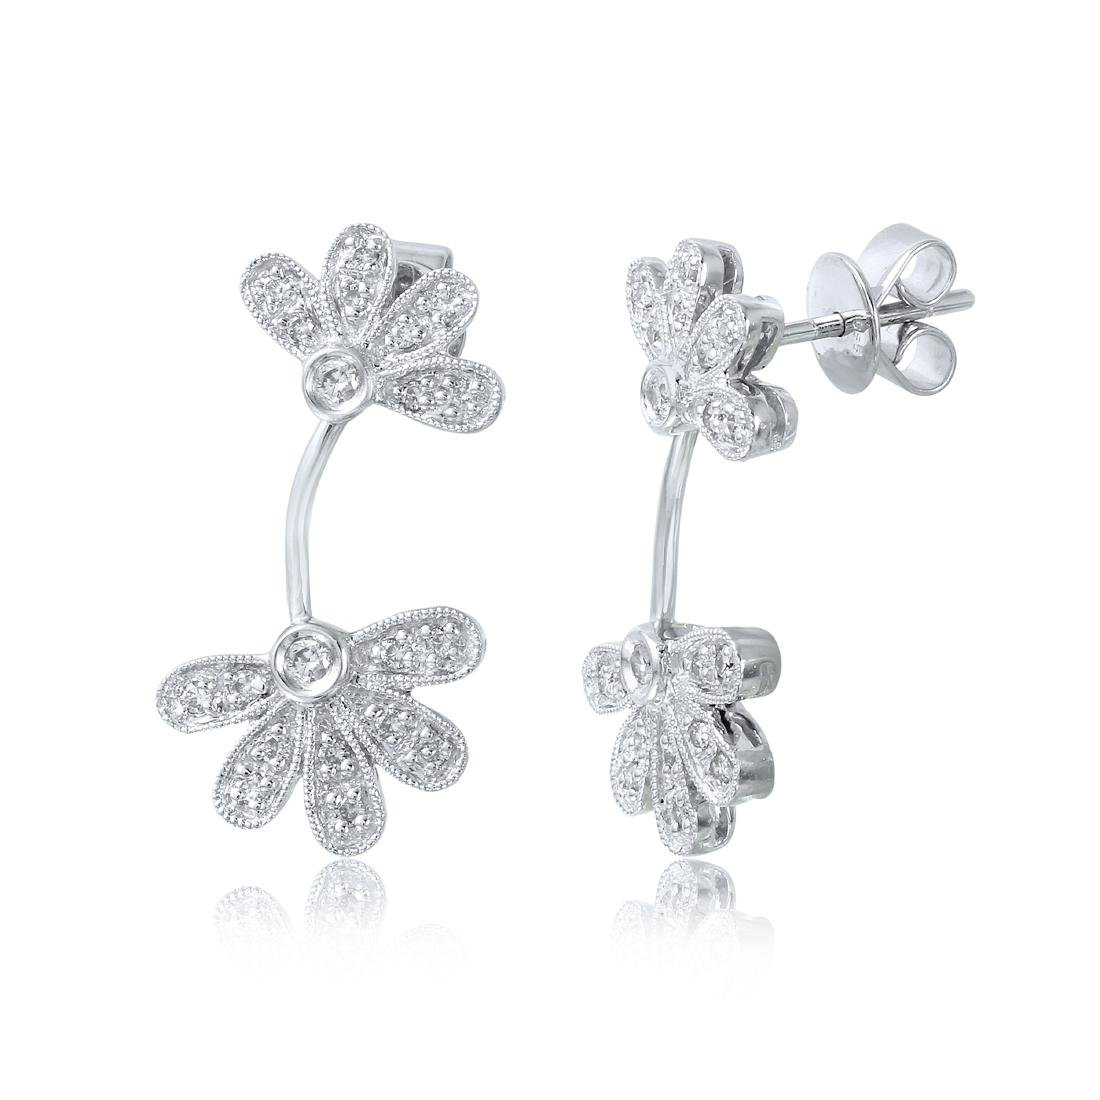 14KT White Gold Diamond Flower Earrings - 2